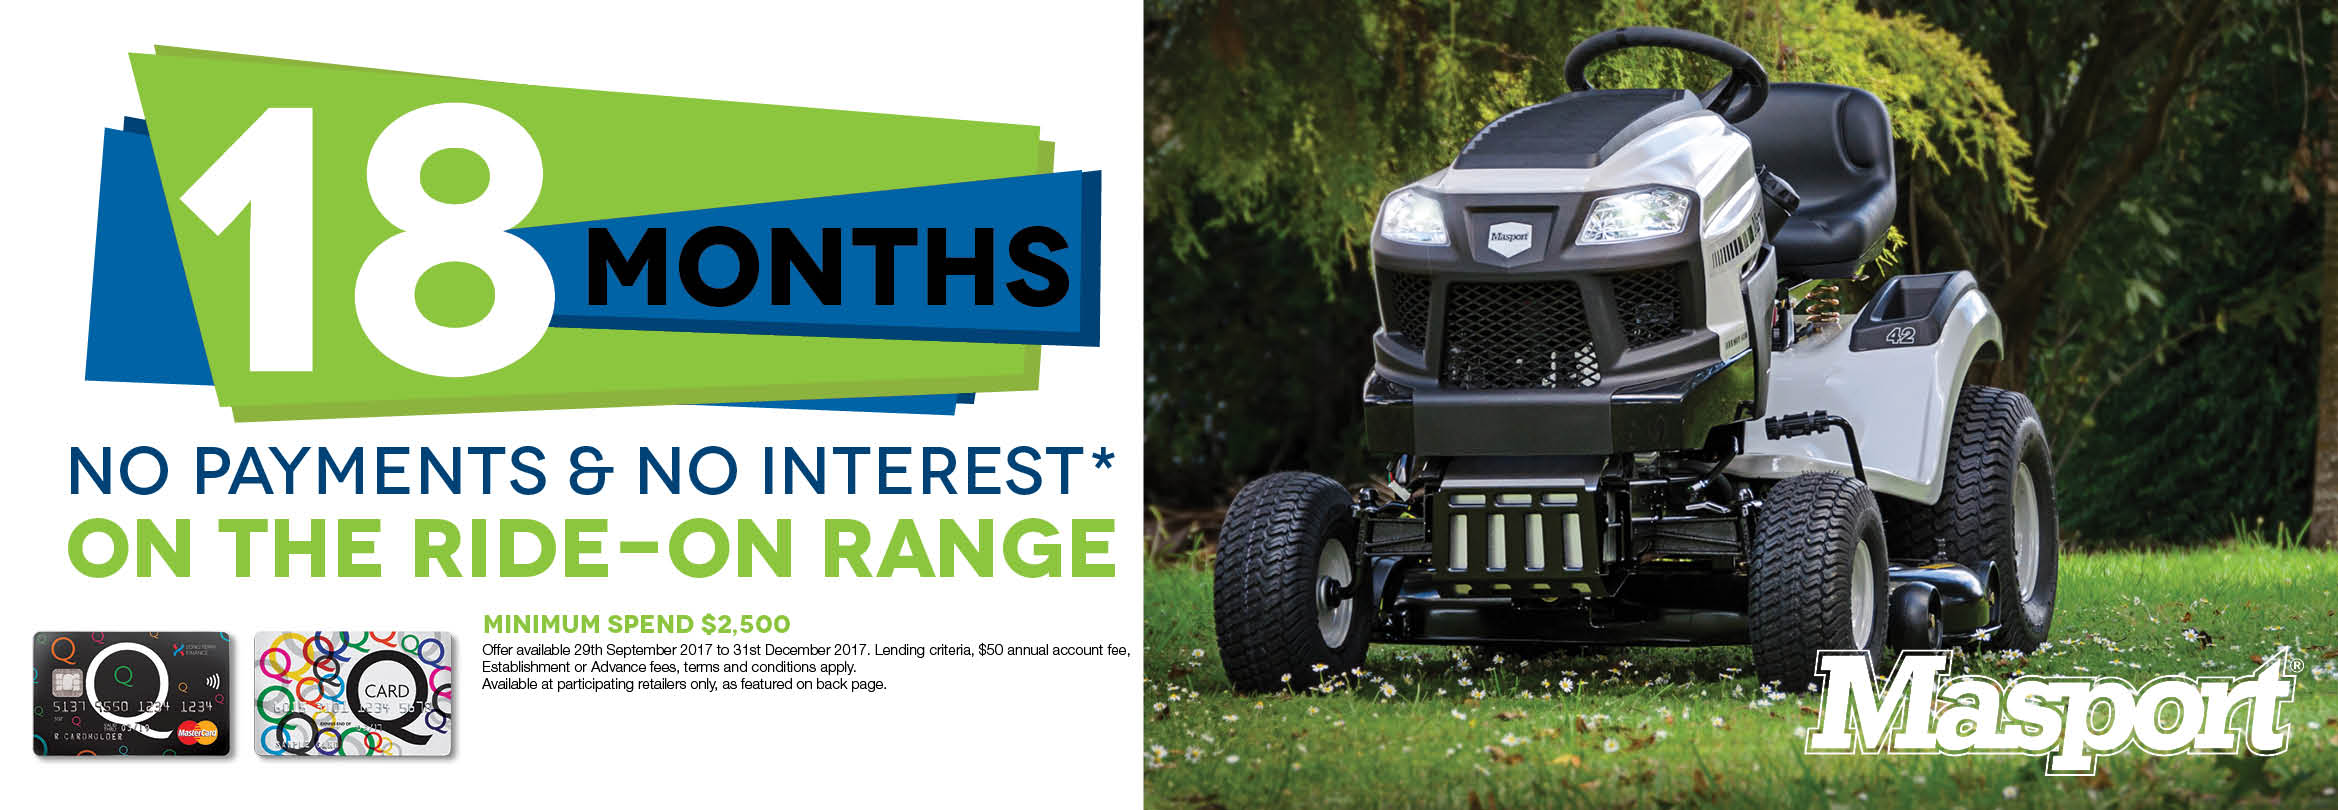 18 Months No Payments & No Interest* On the Ride-On Range 2017